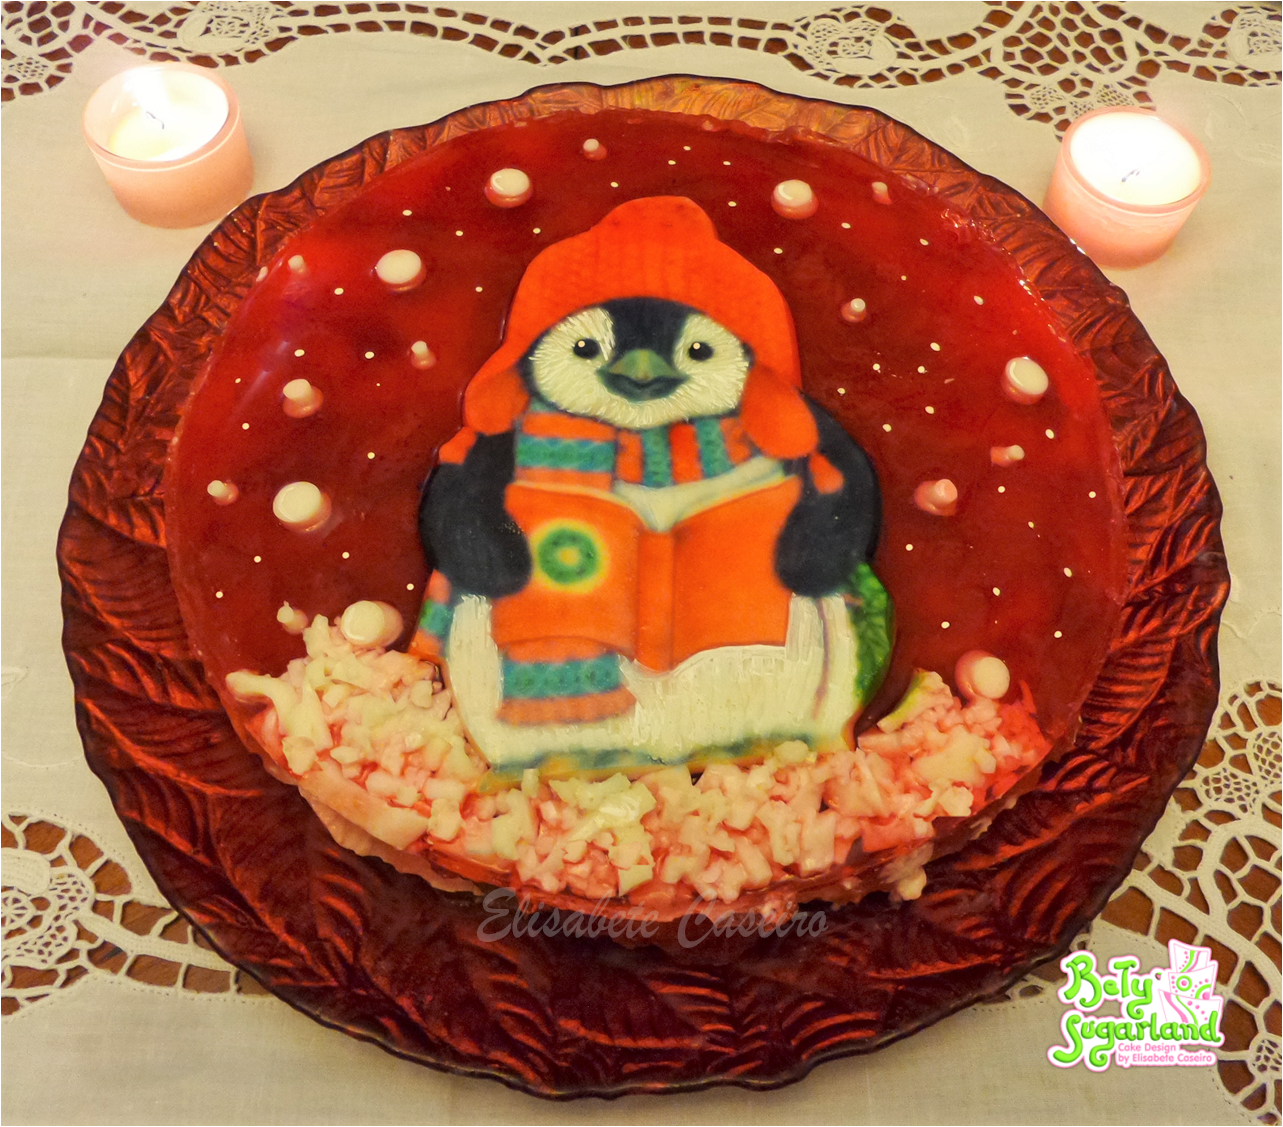 Cheesecake Decorado Pinguim